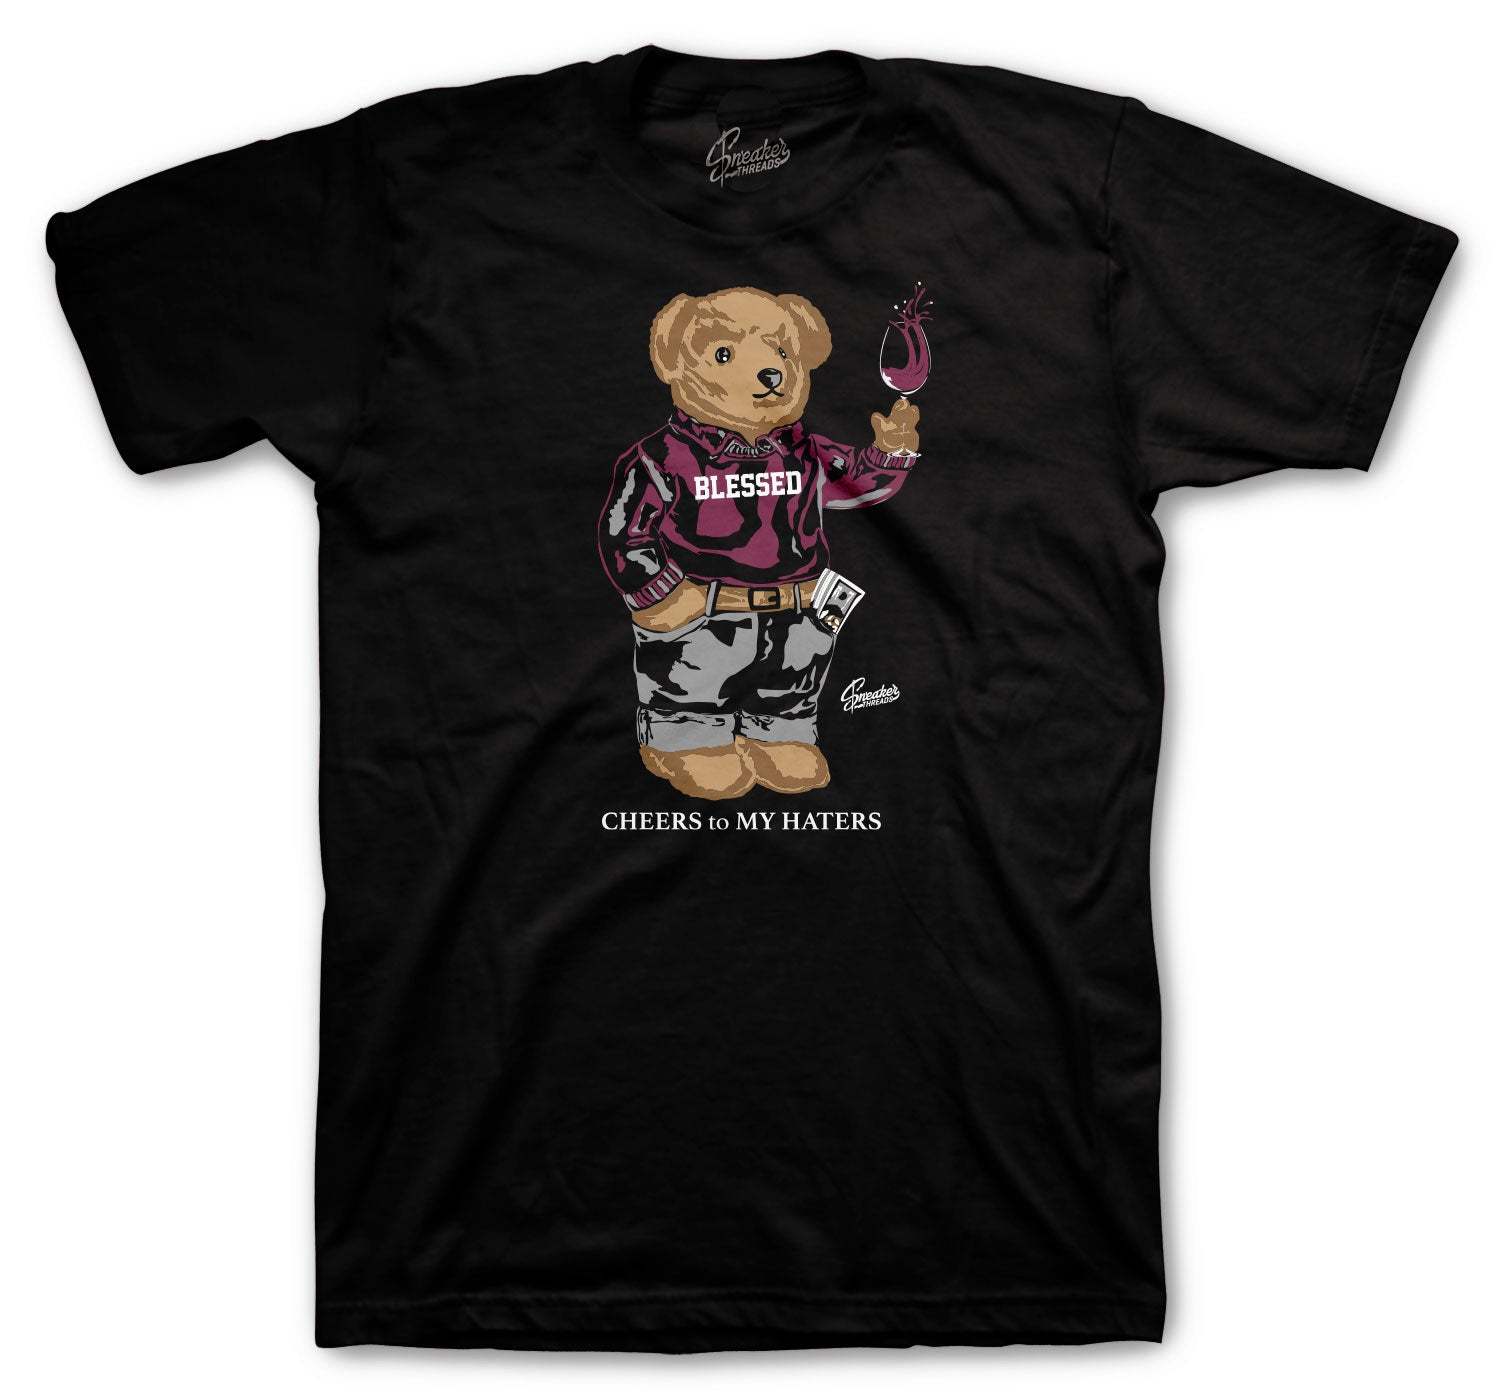 Jordan 6 Singles Day Shirt - Cheers Bear - Black